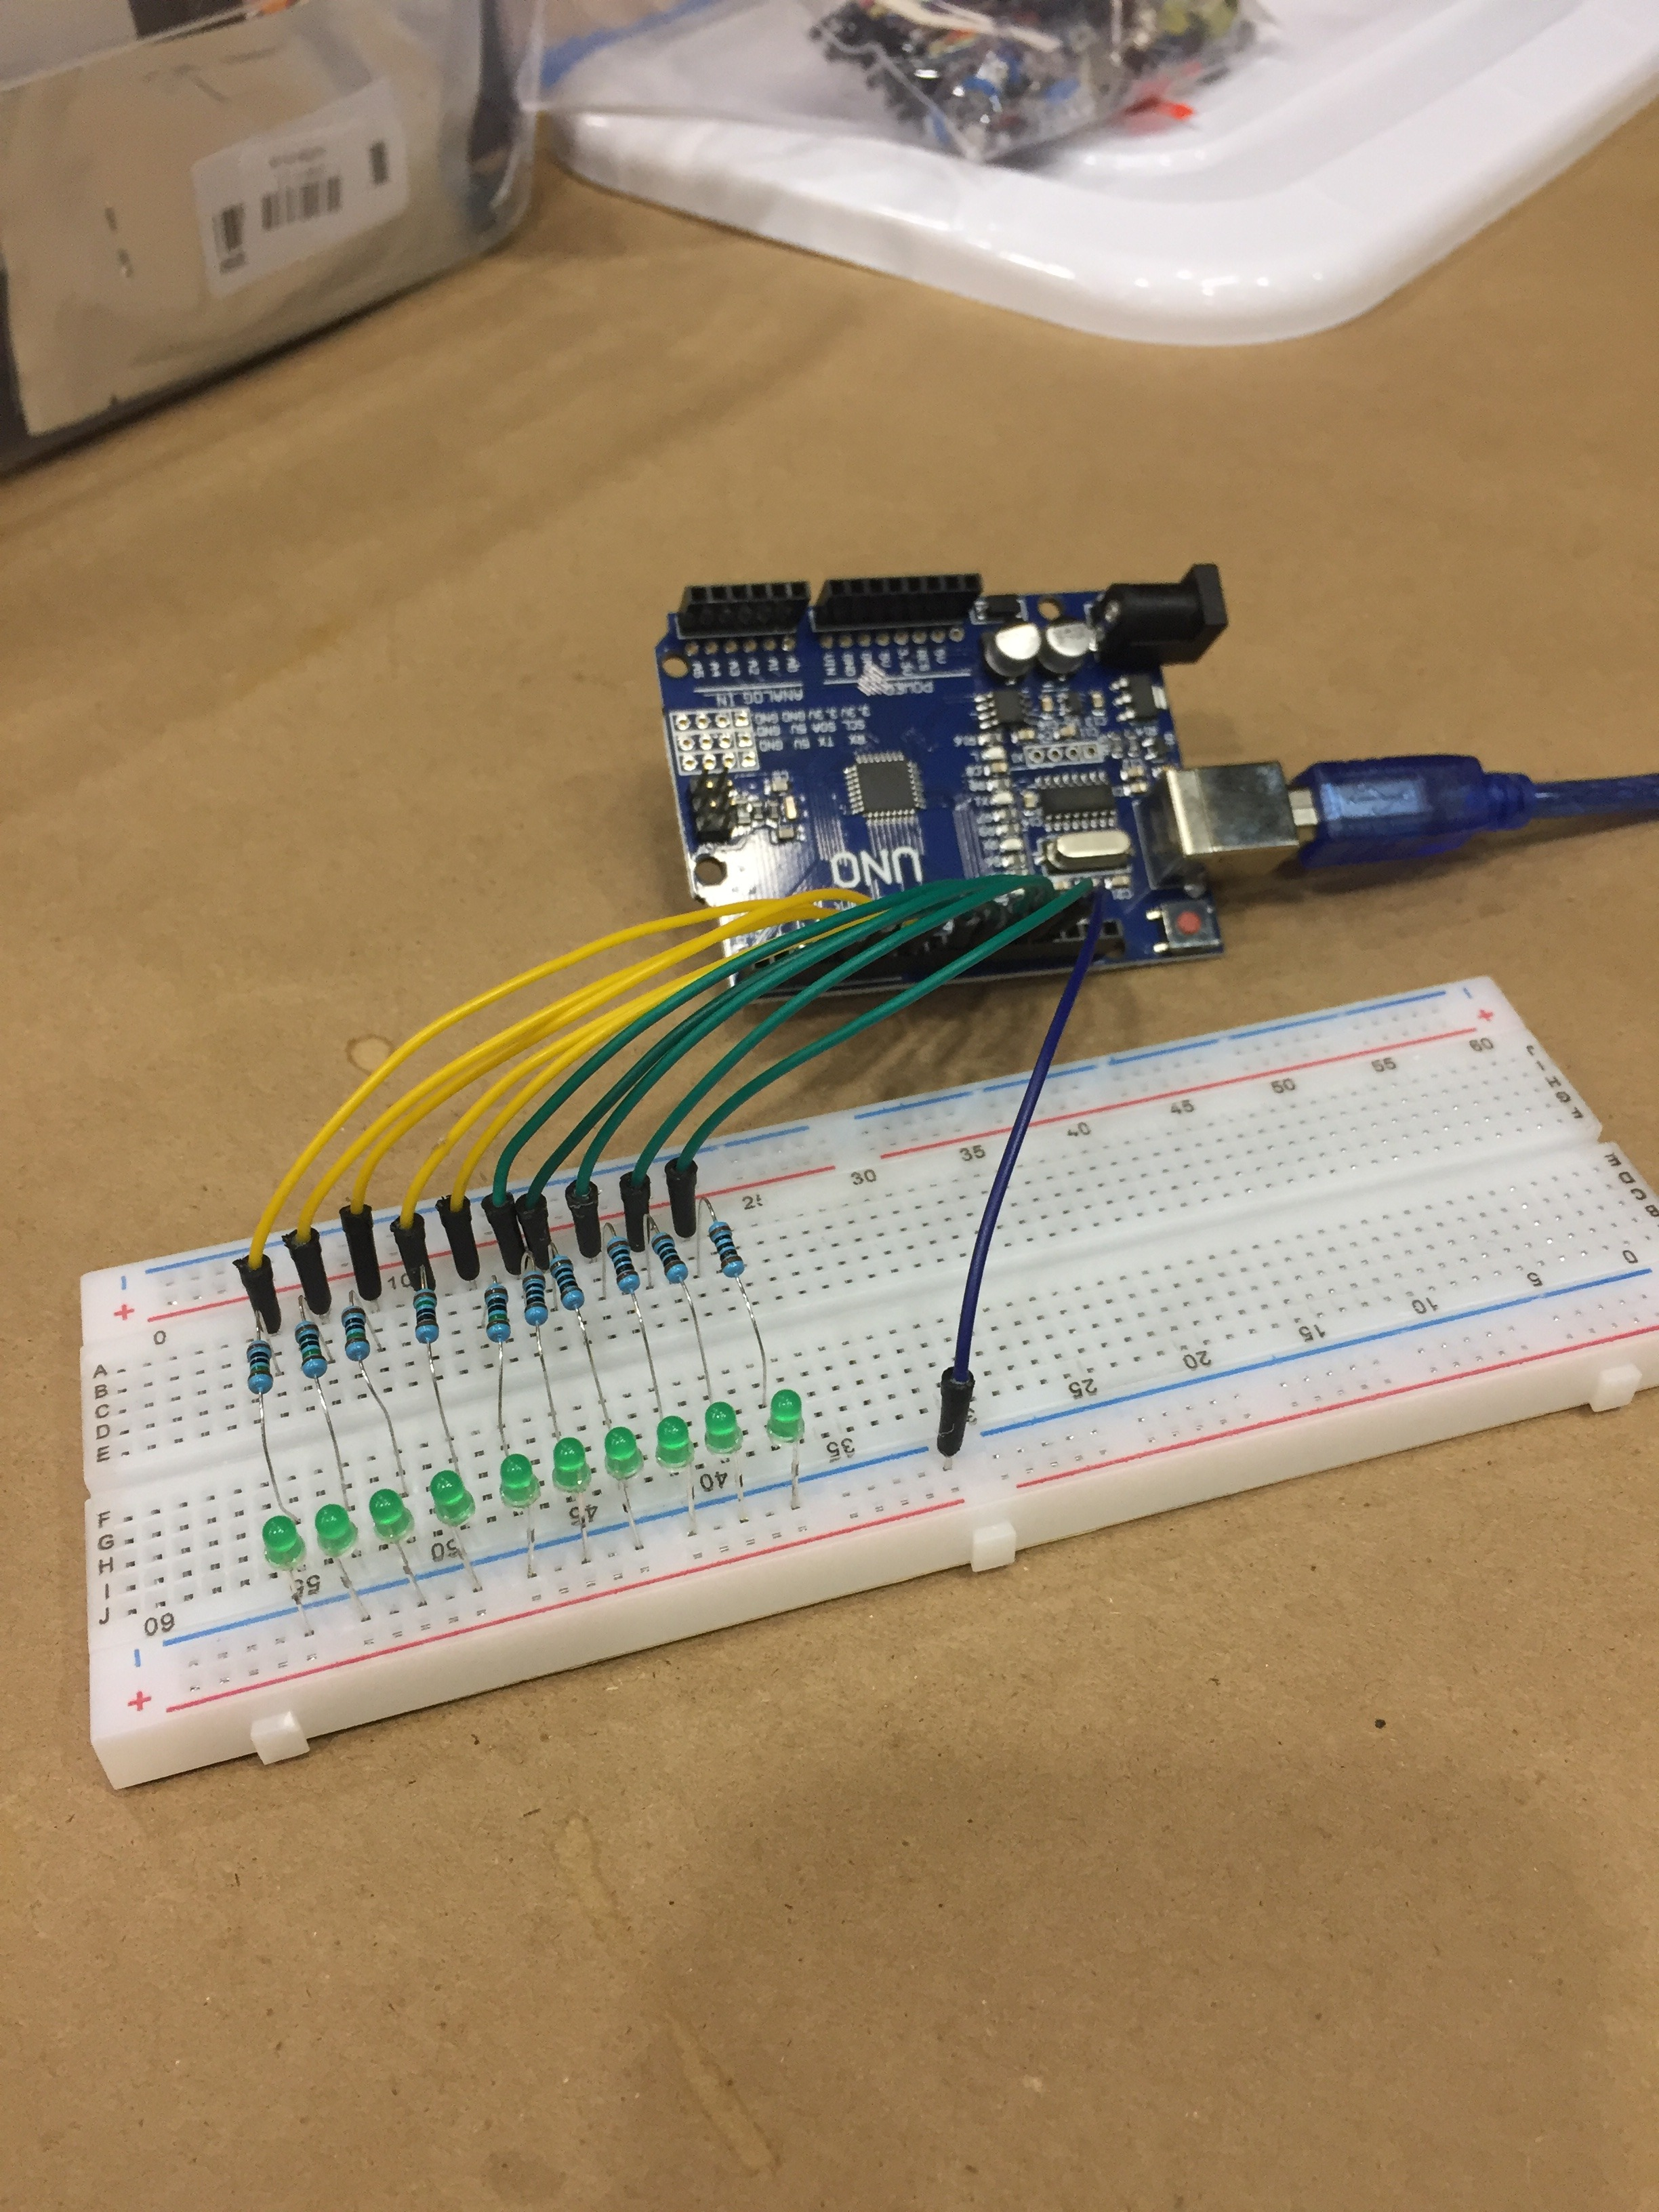 Picture of Breadboard Connections: Jumpers